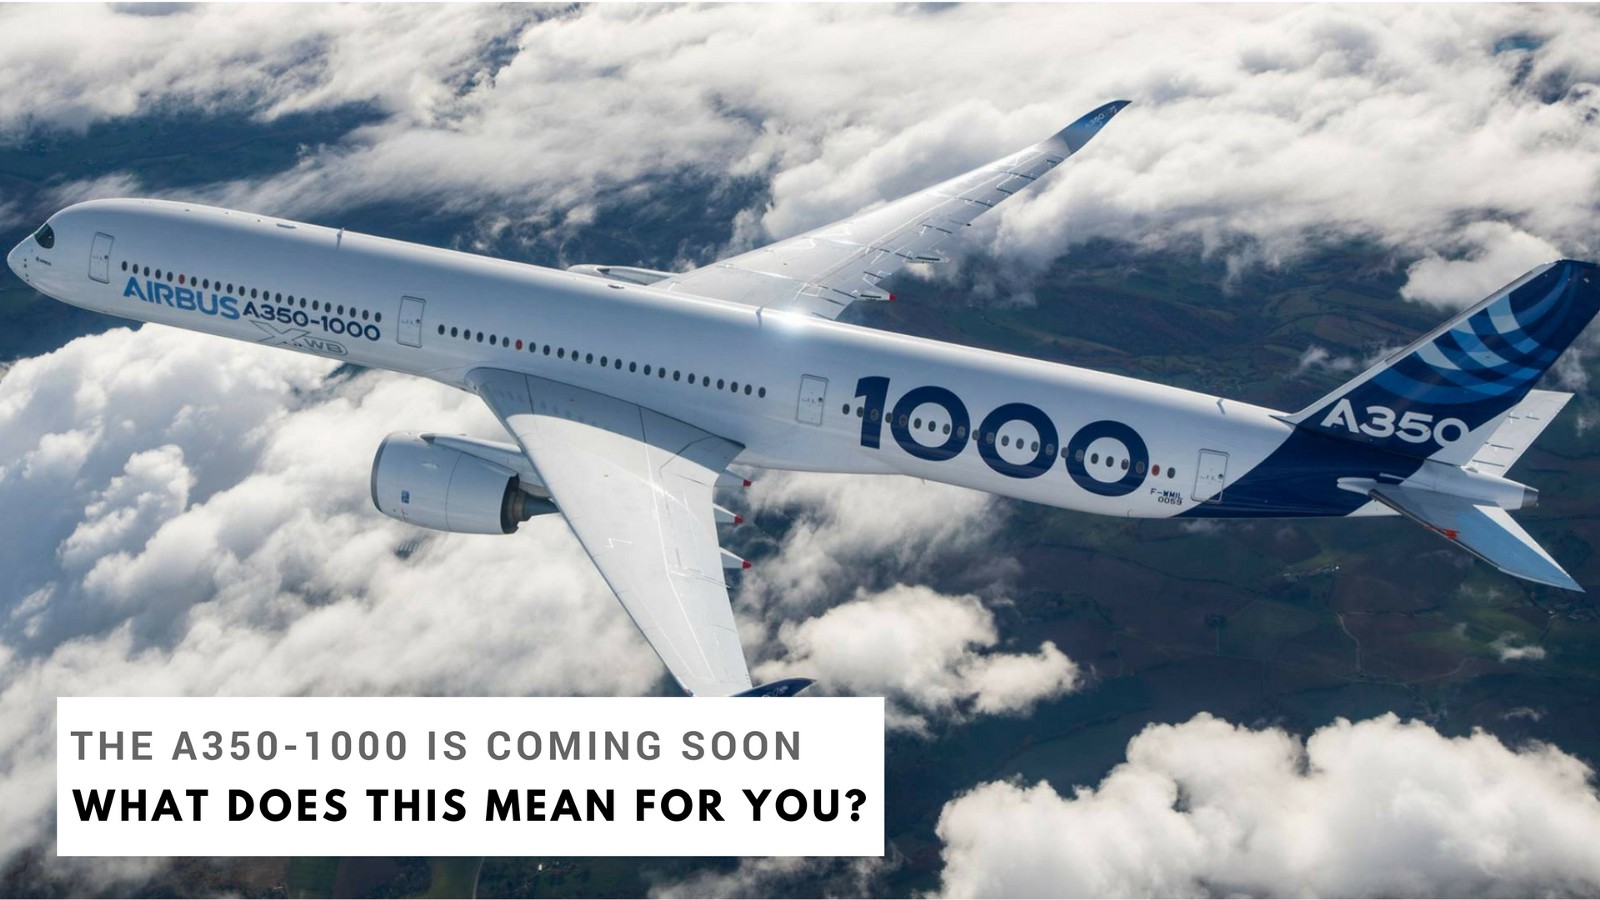 airbus is set to release the a350 1000 xwb what this means for the